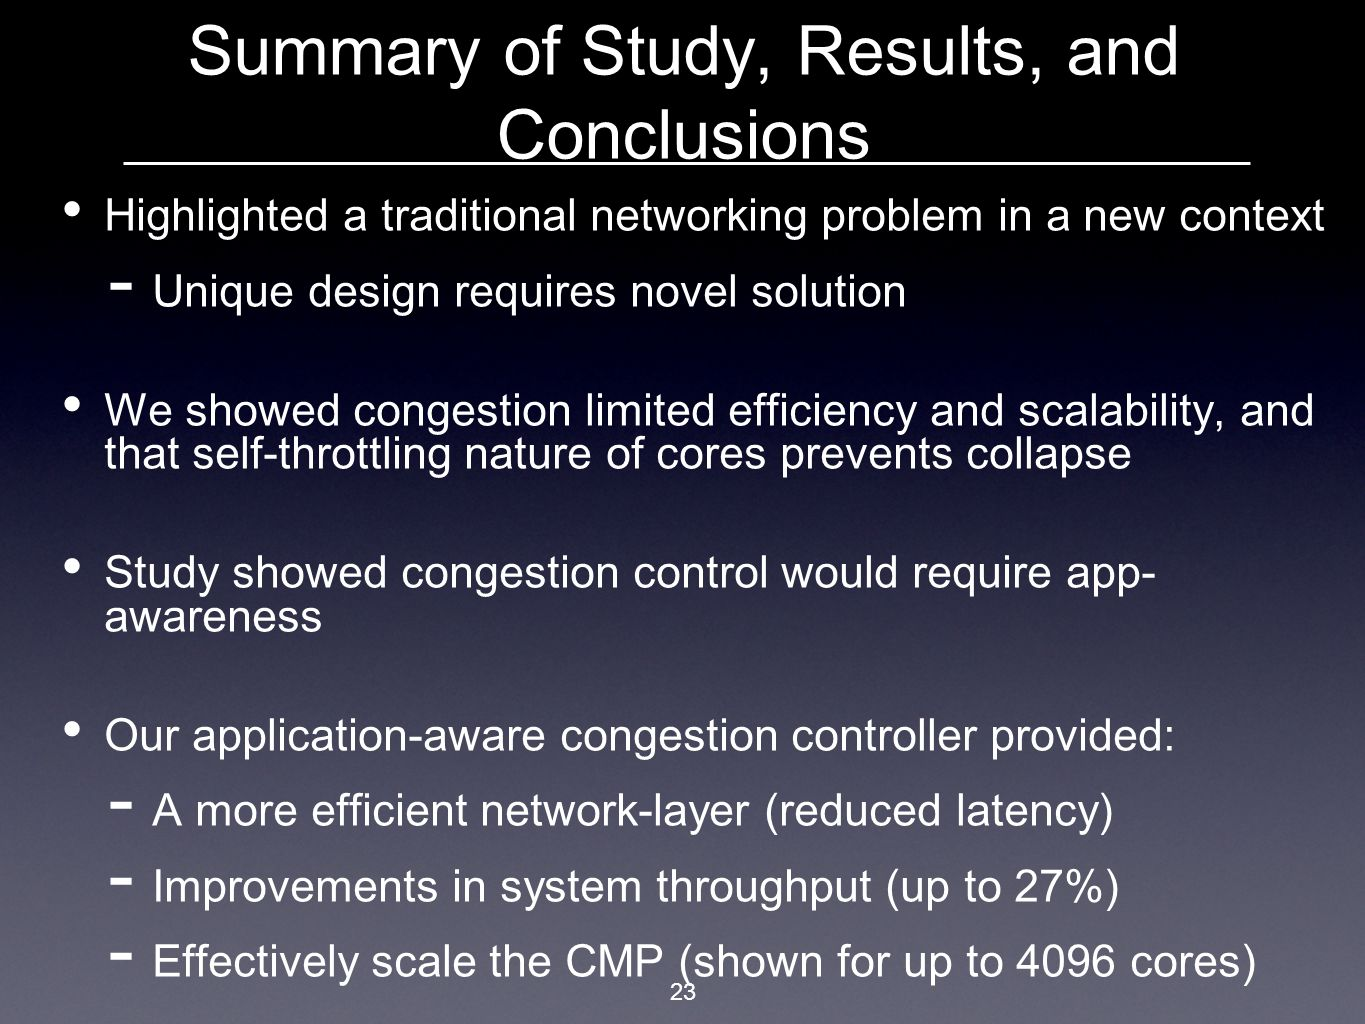 23 Summary of Study, Results, and Conclusions Highlighted a traditional networking problem in a new context  Unique design requires novel solution We showed congestion limited efficiency and scalability, and that self-throttling nature of cores prevents collapse Study showed congestion control would require app- awareness Our application-aware congestion controller provided:  A more efficient network-layer (reduced latency)  Improvements in system throughput (up to 27%)  Effectively scale the CMP (shown for up to 4096 cores)